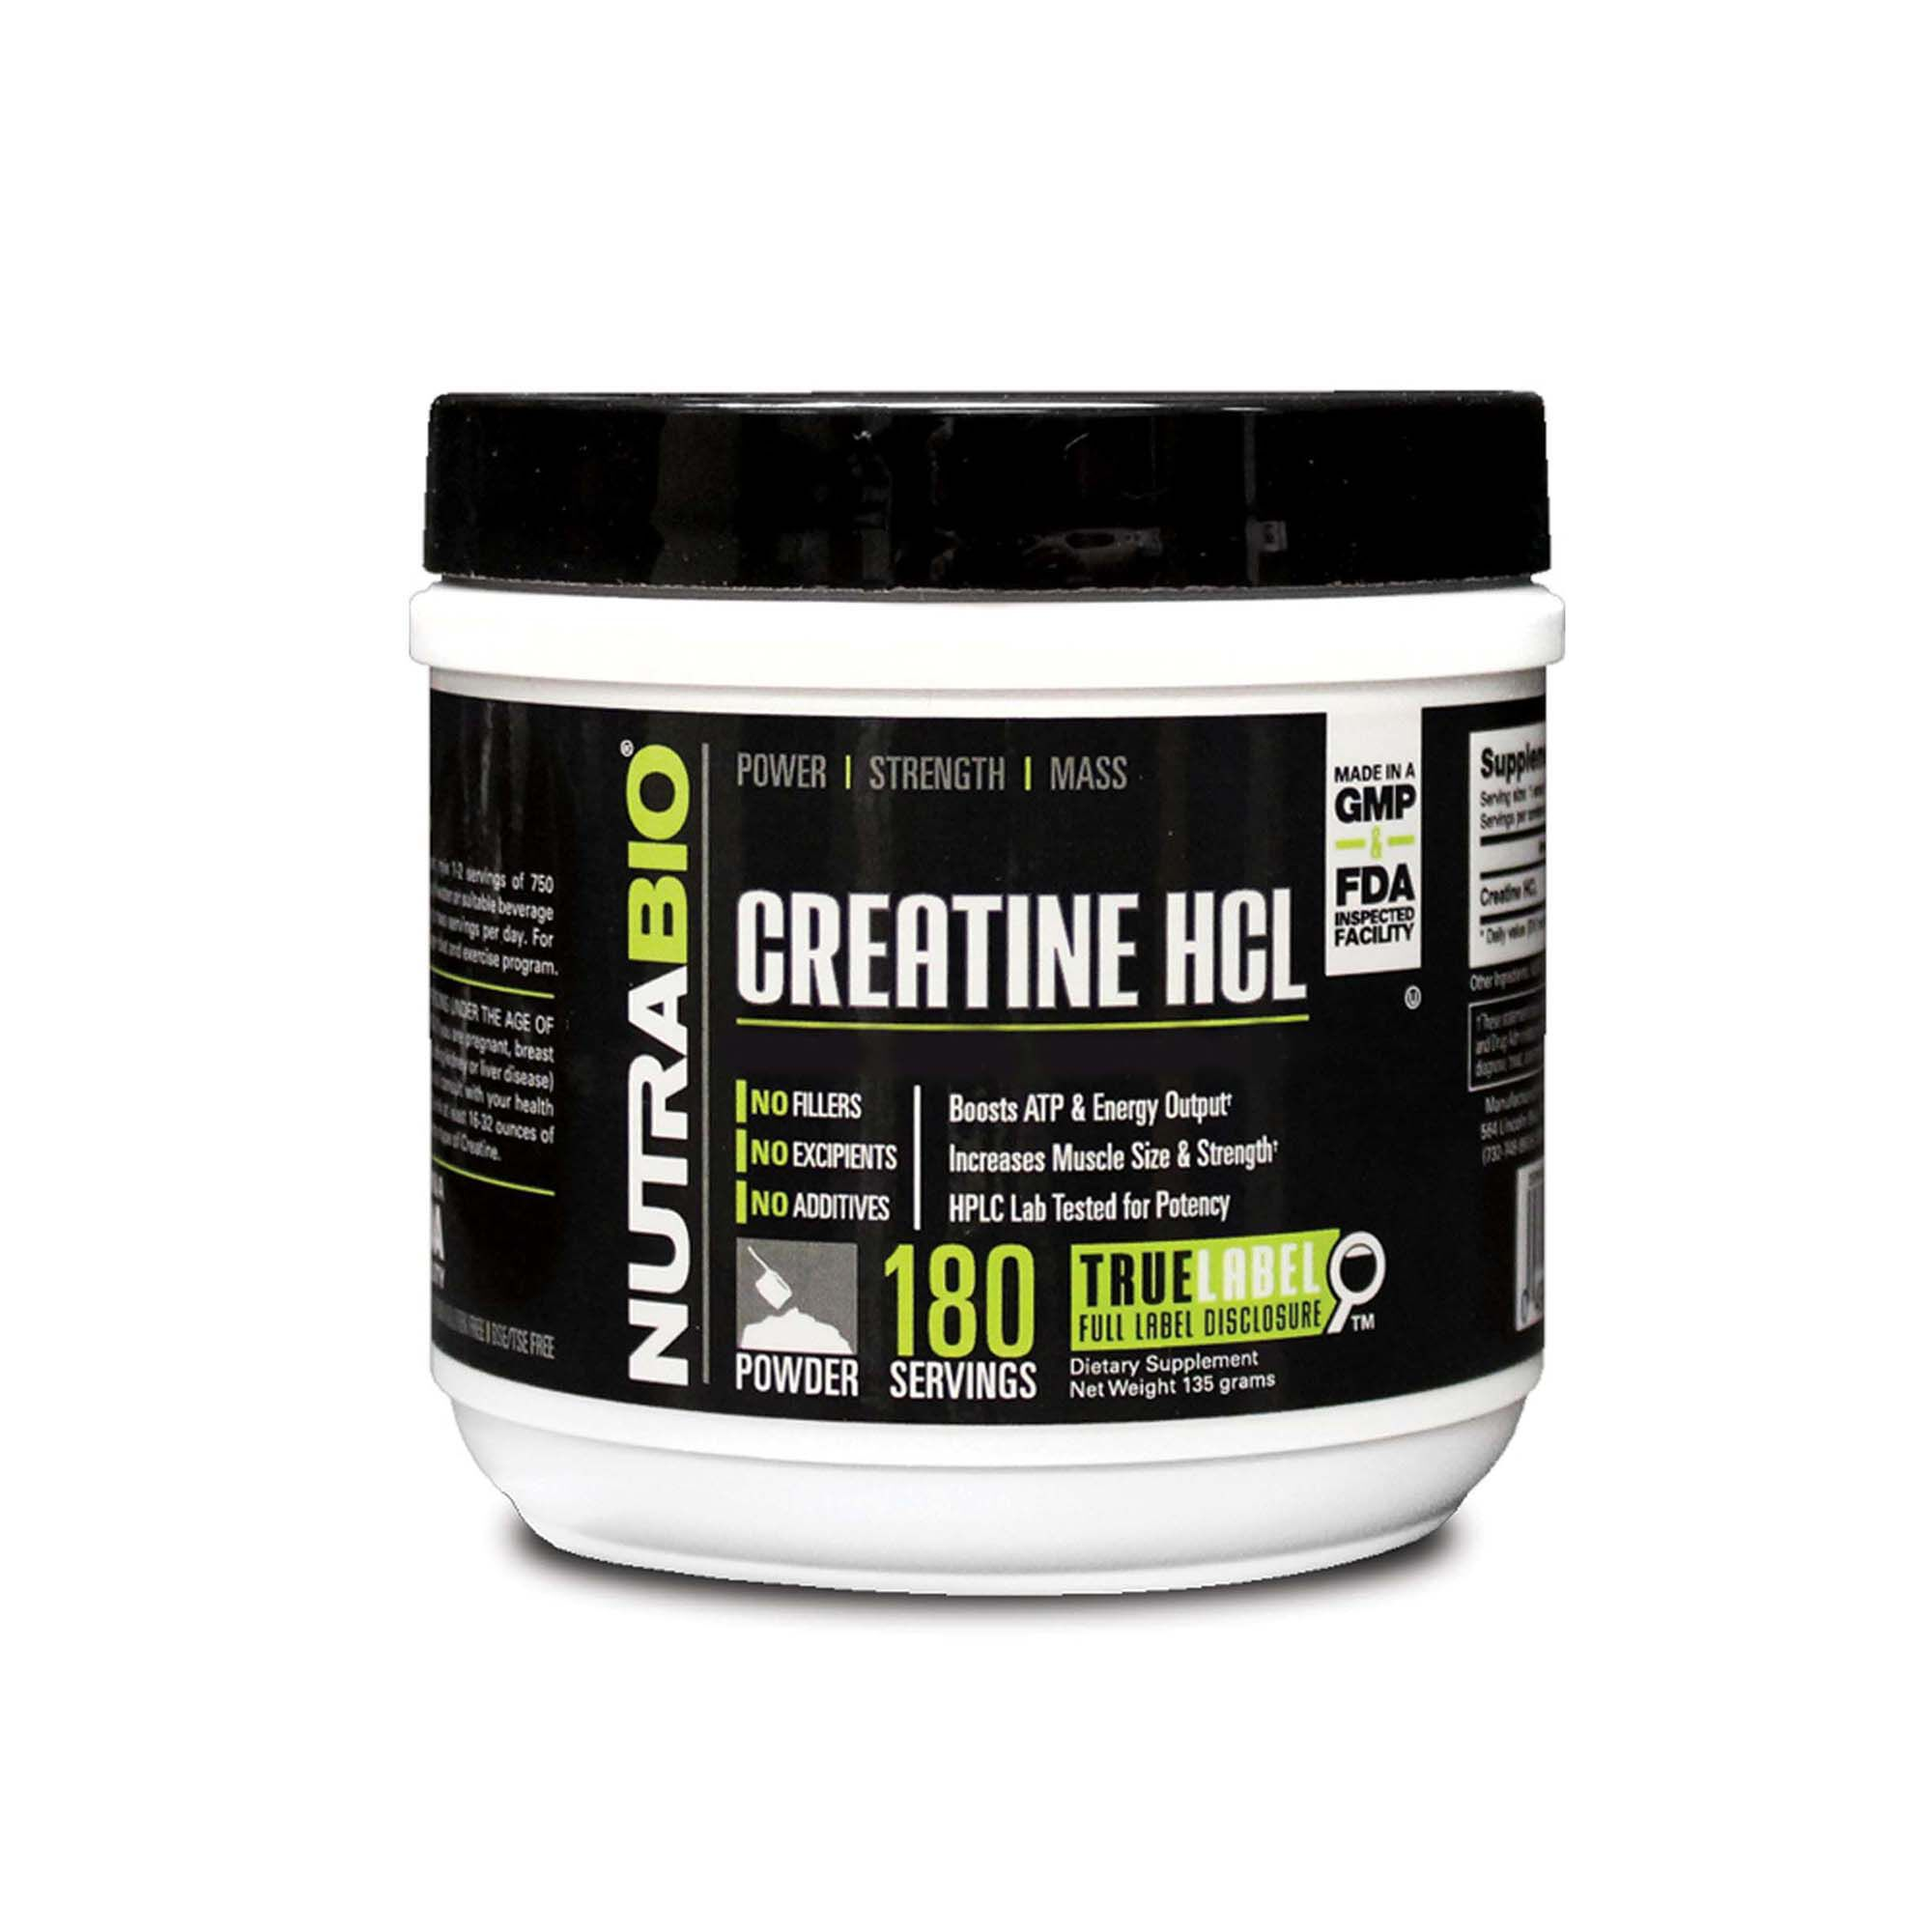 Creatine Hcl - 180 Servings - Nutrabio - Creatine